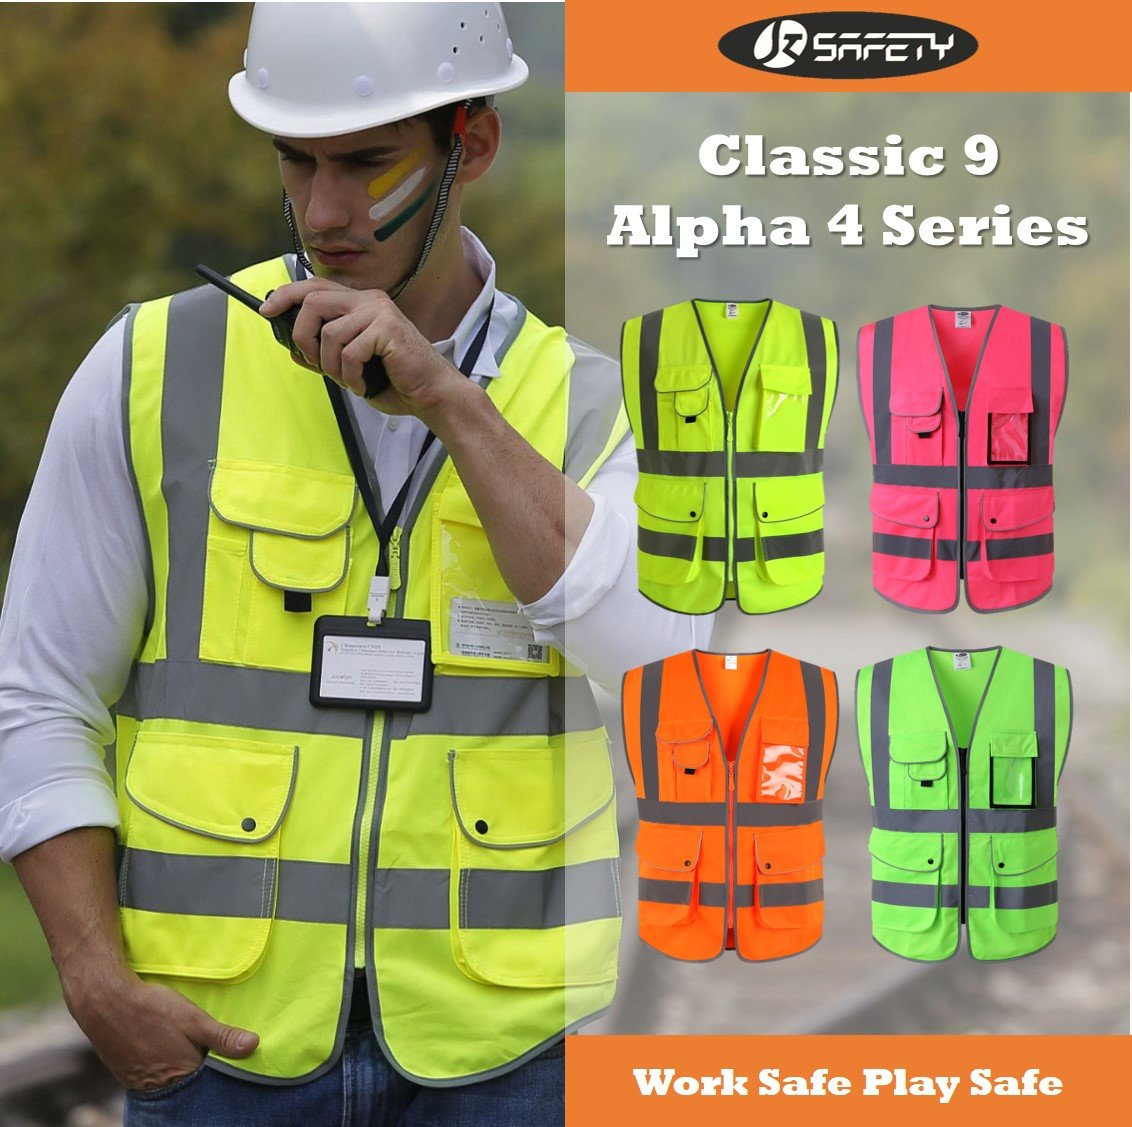 /¡/­ JKSafety 9 Pockets Class 2 High Visibility Zipper Front Safety Vest with Reflective Strips XX-Large, Orange Meets ANSI//ISEA Standards